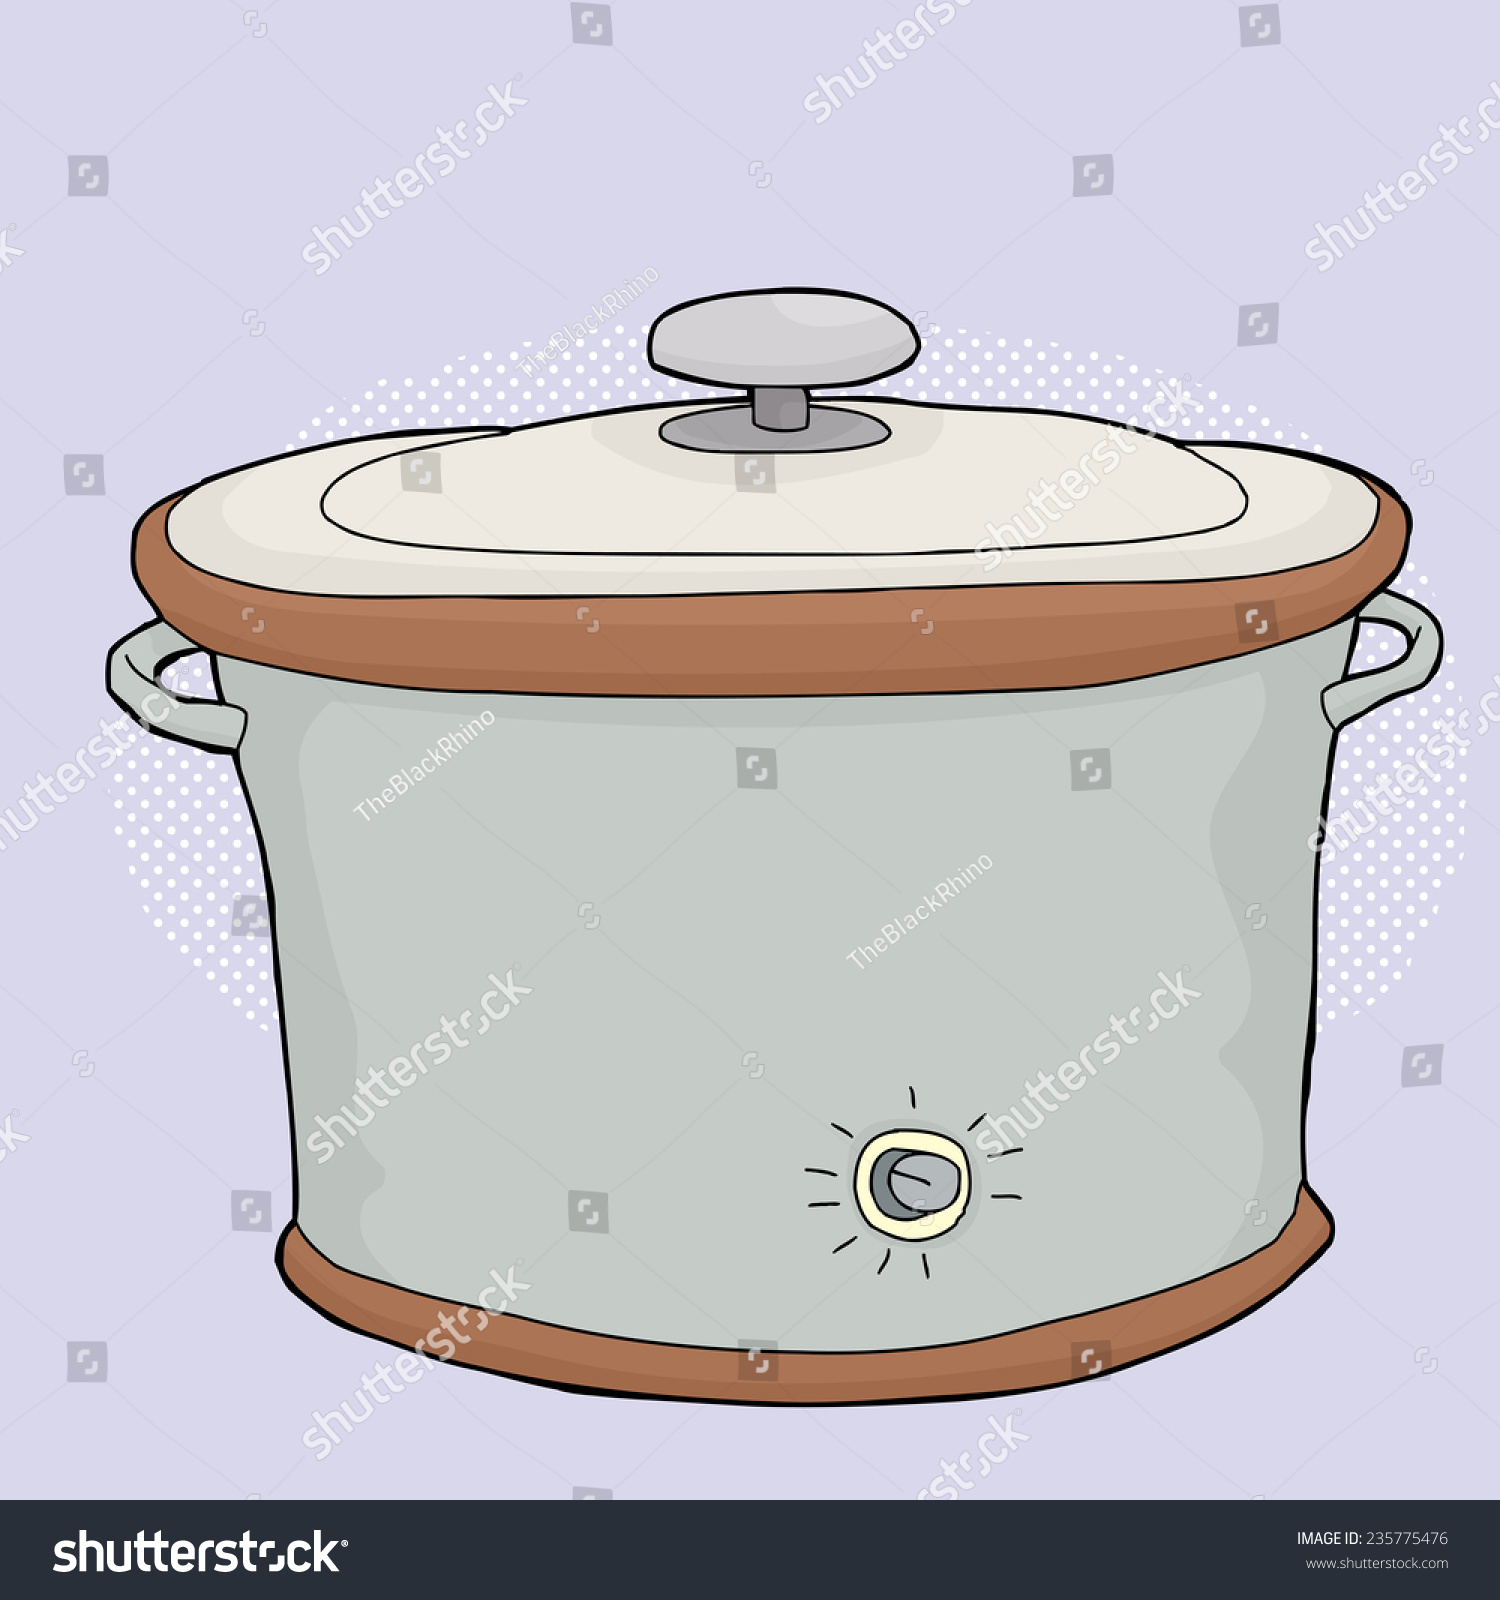 Cartoon Electric Cooker ~ Cartoon electric slow cooker closed lid stock vector